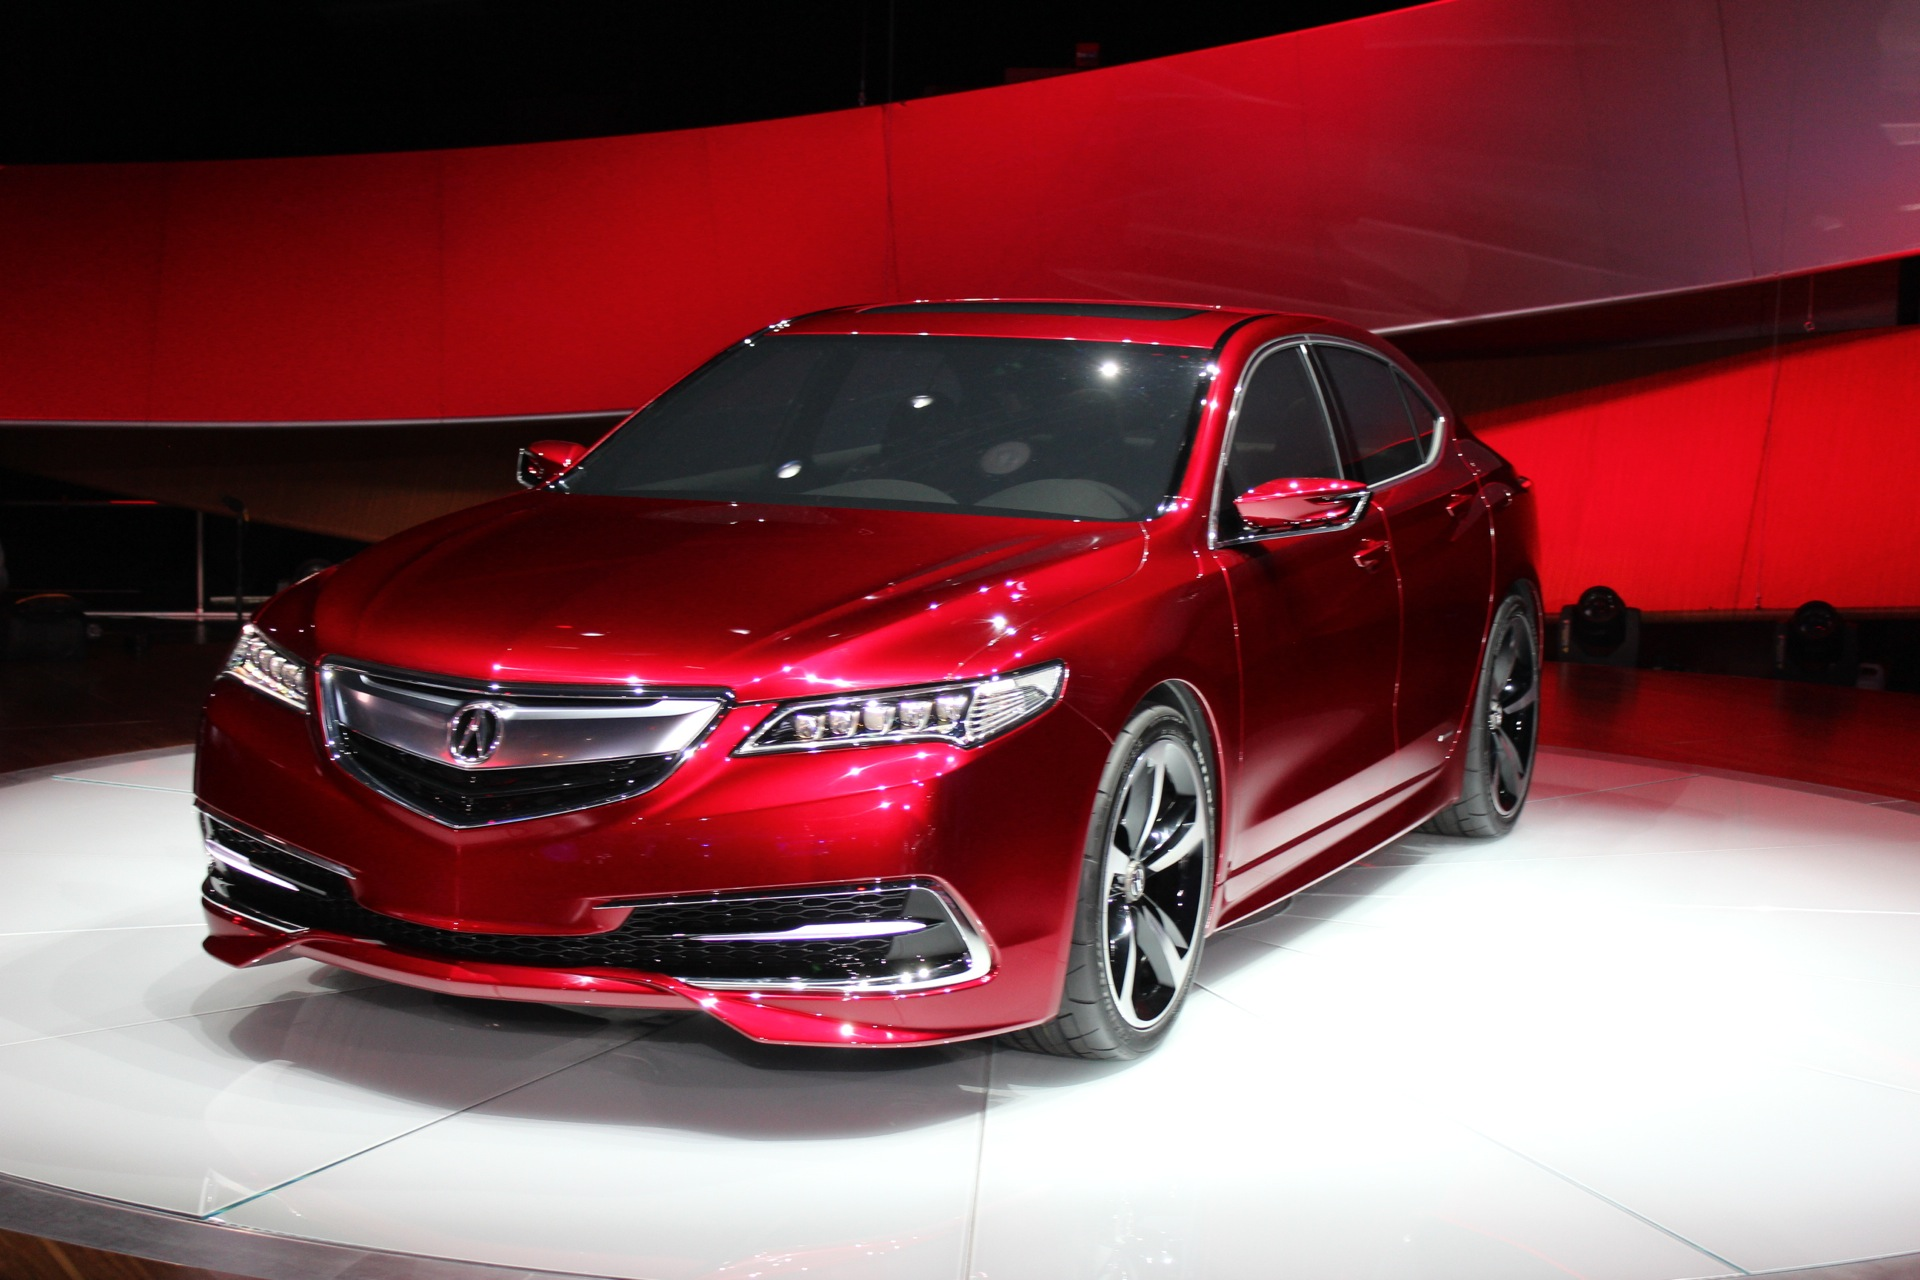 2015 Acura Tlx Tech >> 2015 Acura TLX Prototype: Full Details, Live Photos & Video